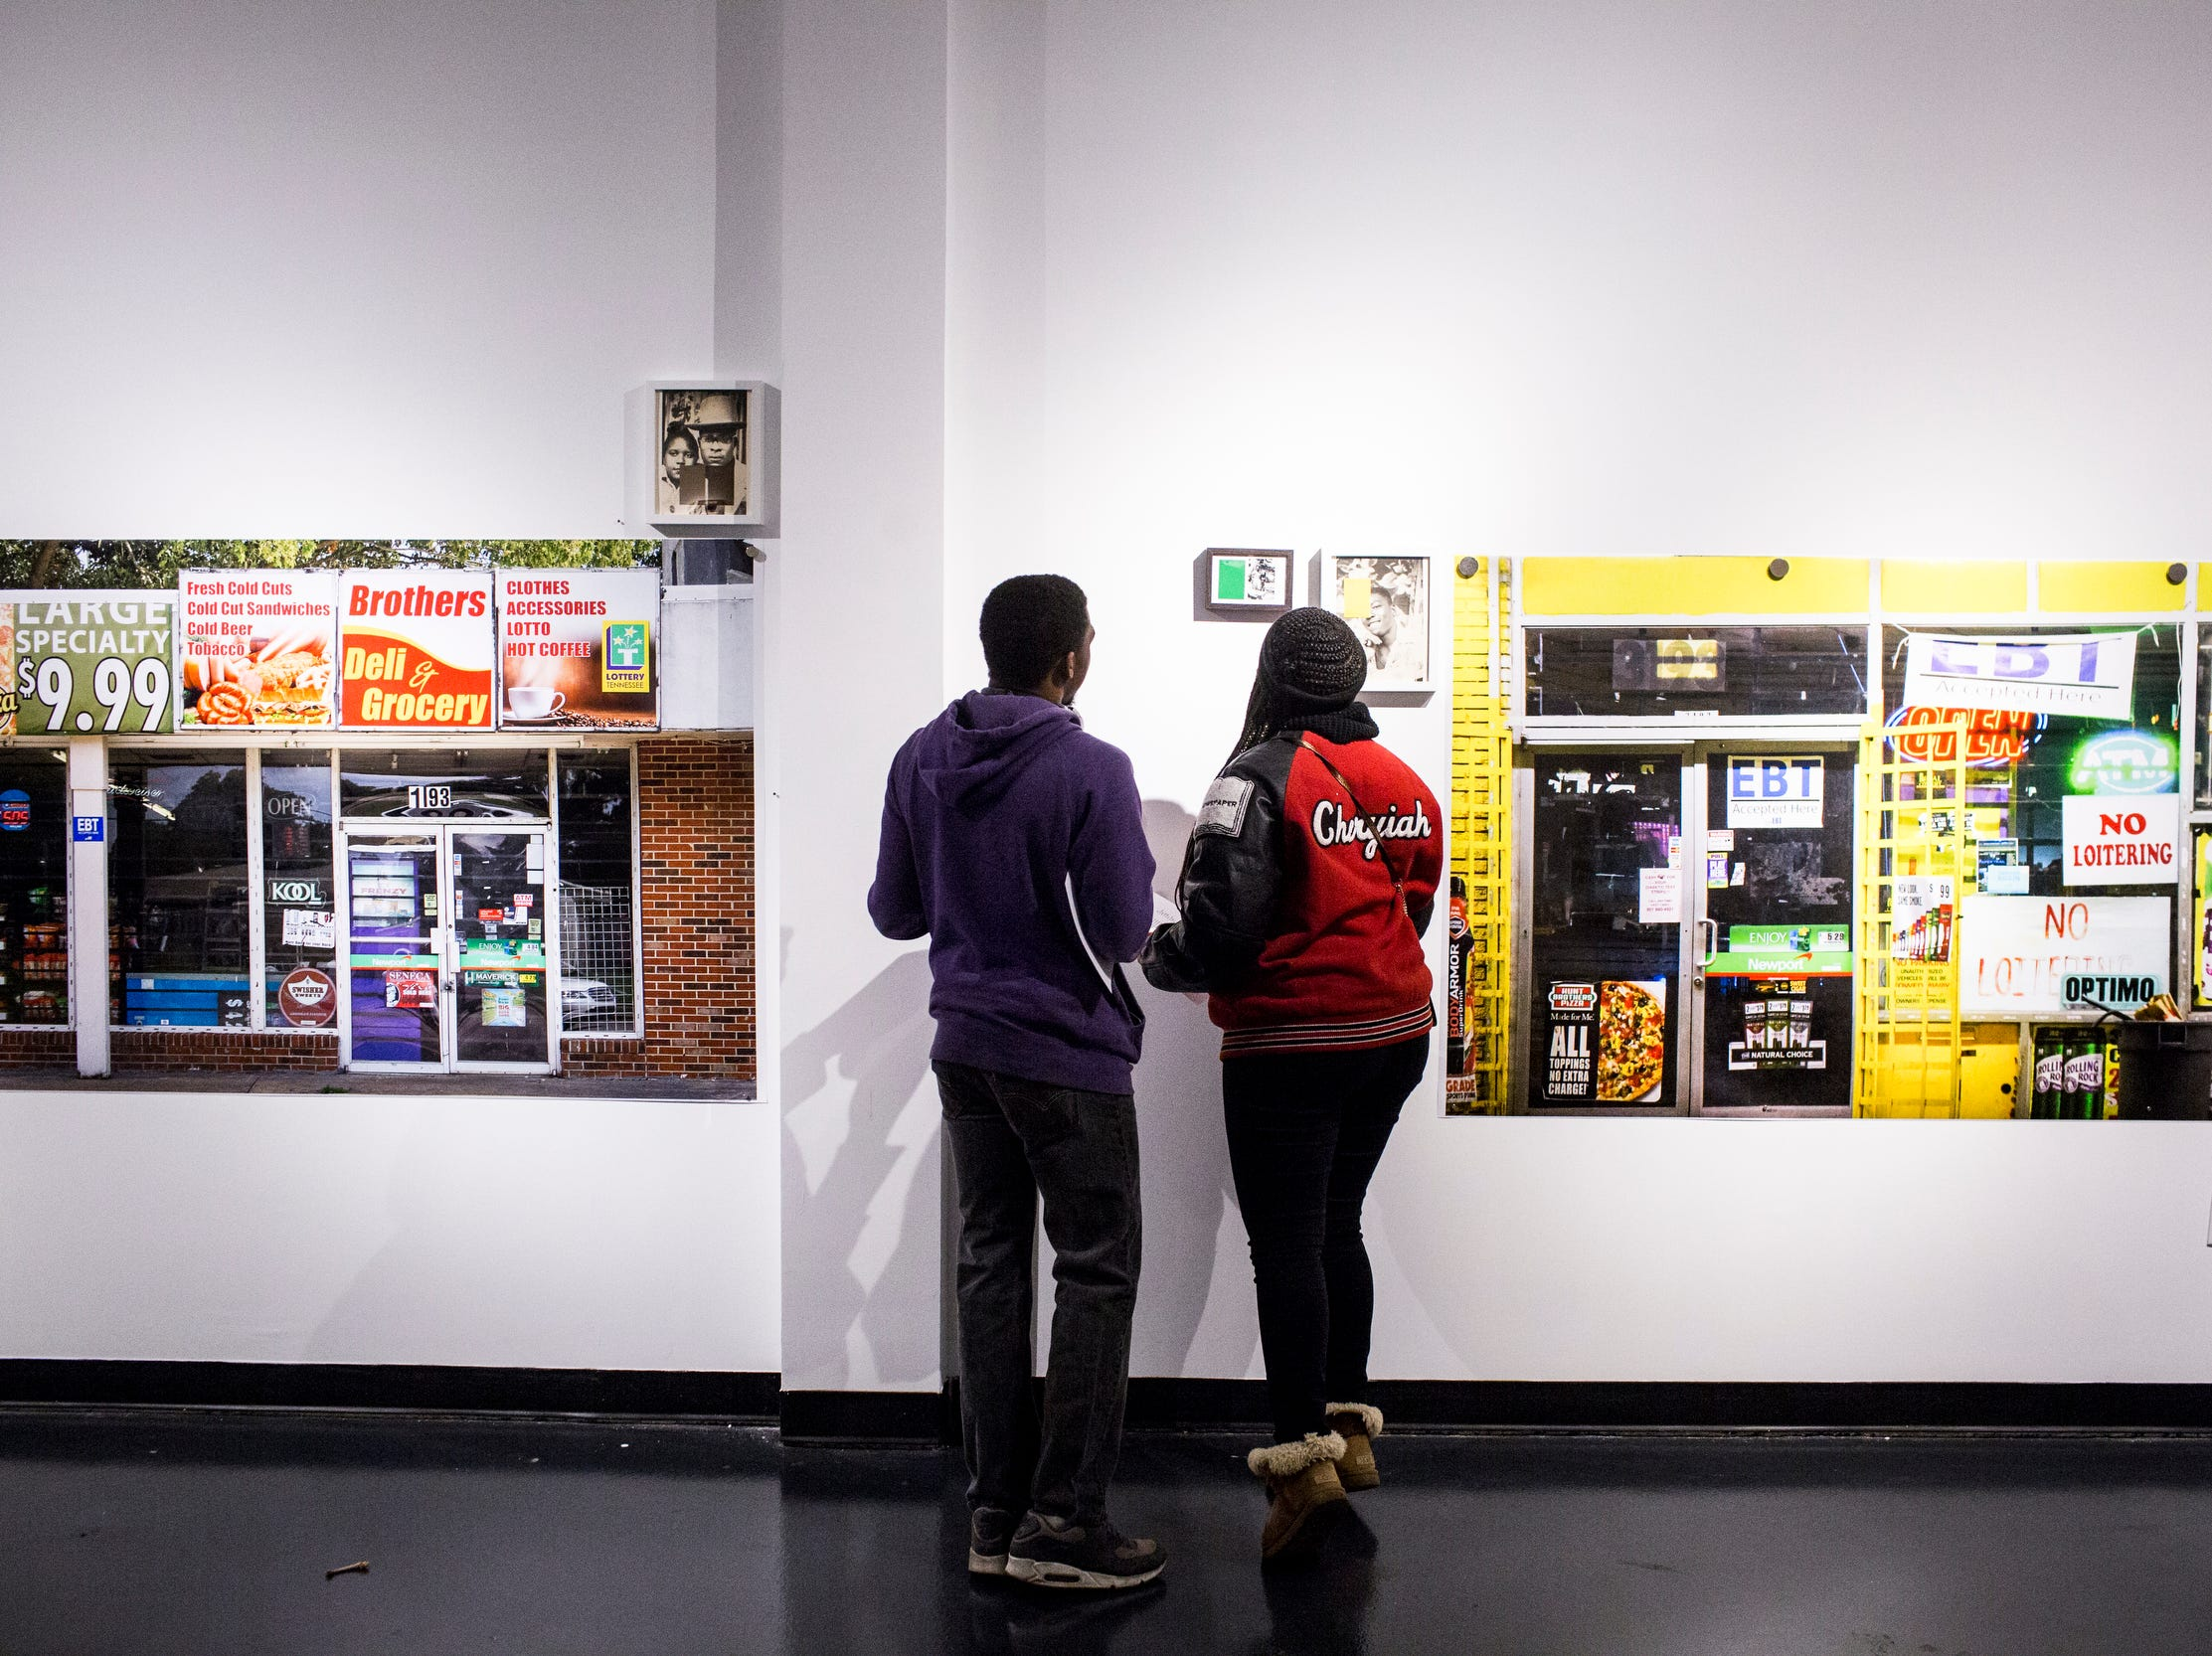 February 08, 2019 - Caleb Stokes, left, and Cheryiah Hill, right, look at work during the PHTGRPHS show featuring work by Lester Merriweather and Lawrence Matthews at The CMPLX. The CMPLX, a gallery, office and work space for The Collective, is located at 2234 Lamar Ave. in the Lamar Airways Shopping Center in Orange Mound.